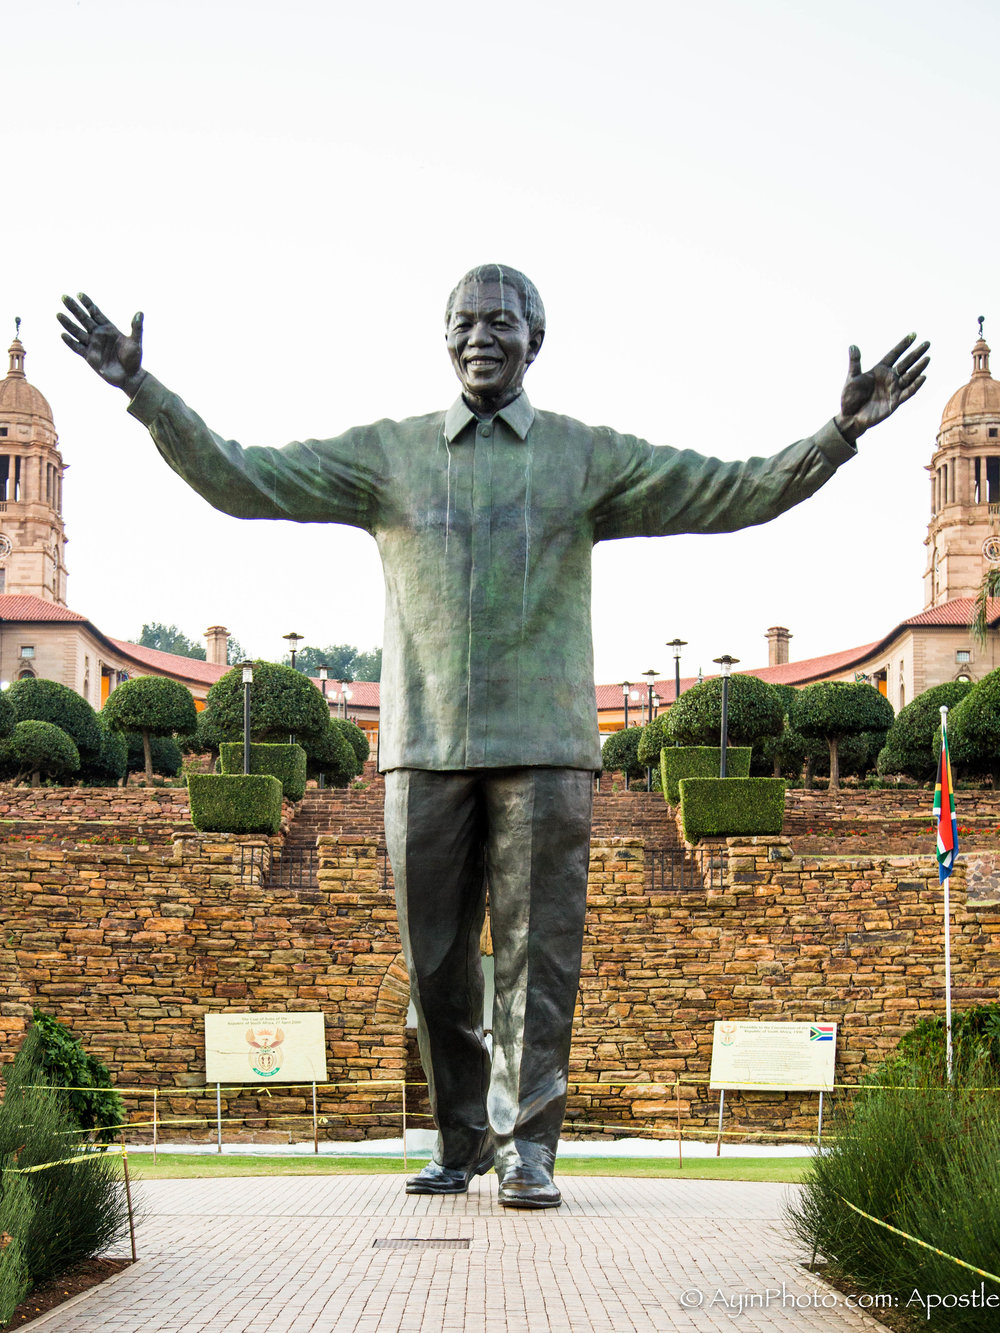 Mandela Statue - Union Square, South Africa